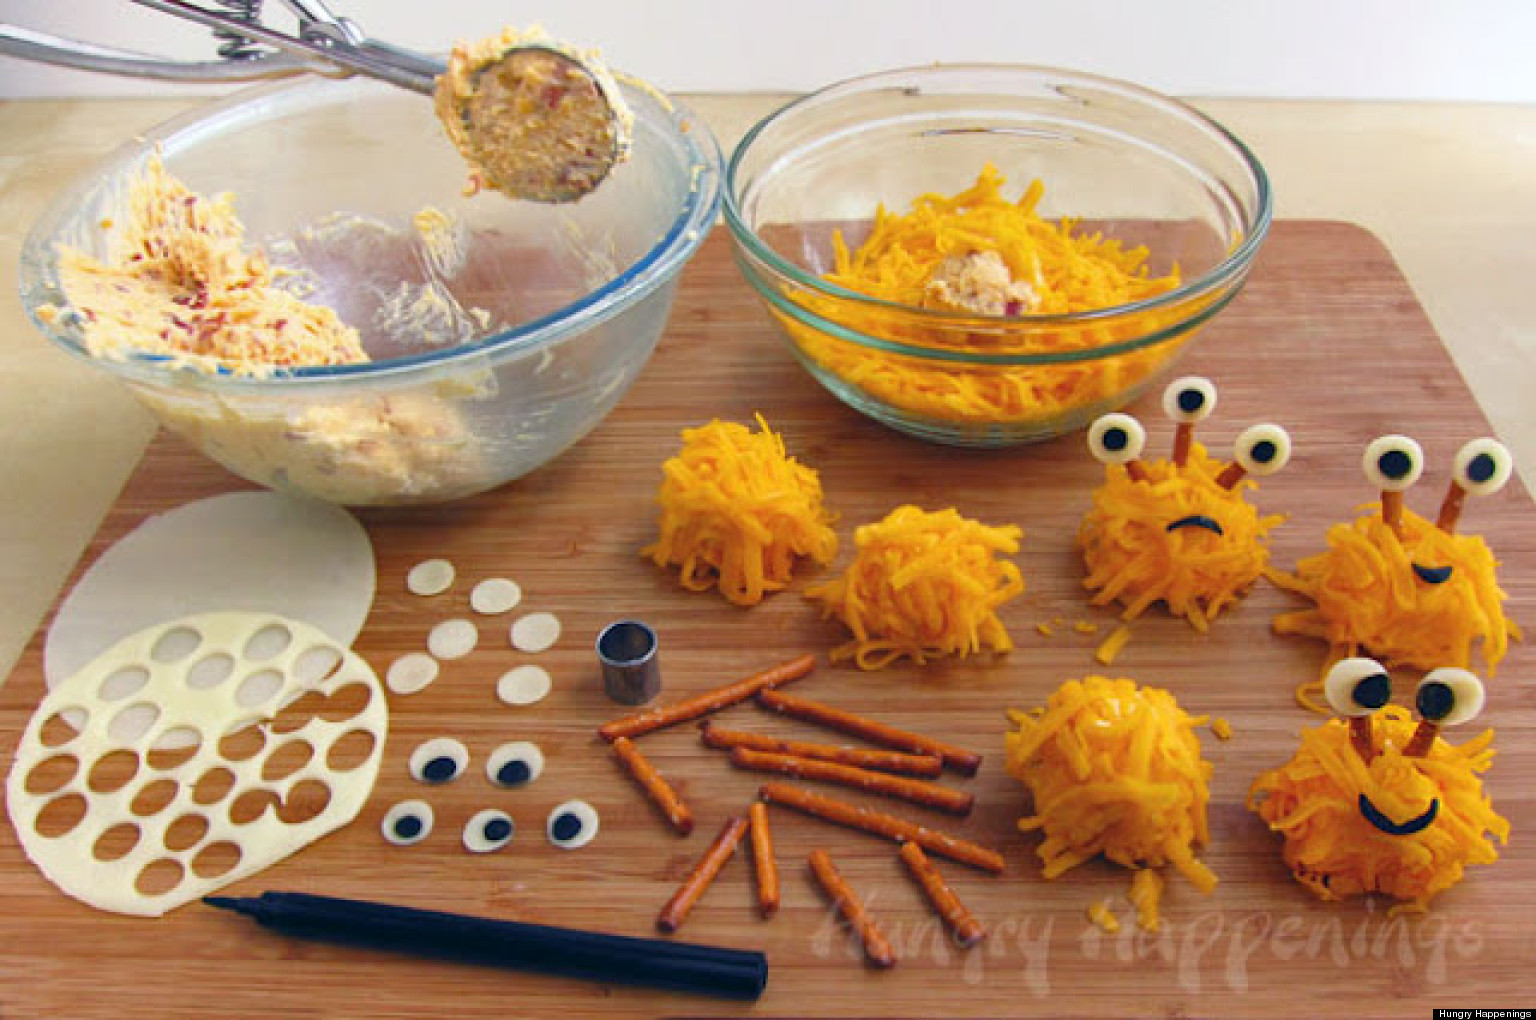 Creative kids foods recipes your kids will actually want to eat creative kids foods recipes your kids will actually want to eat photos huffpost forumfinder